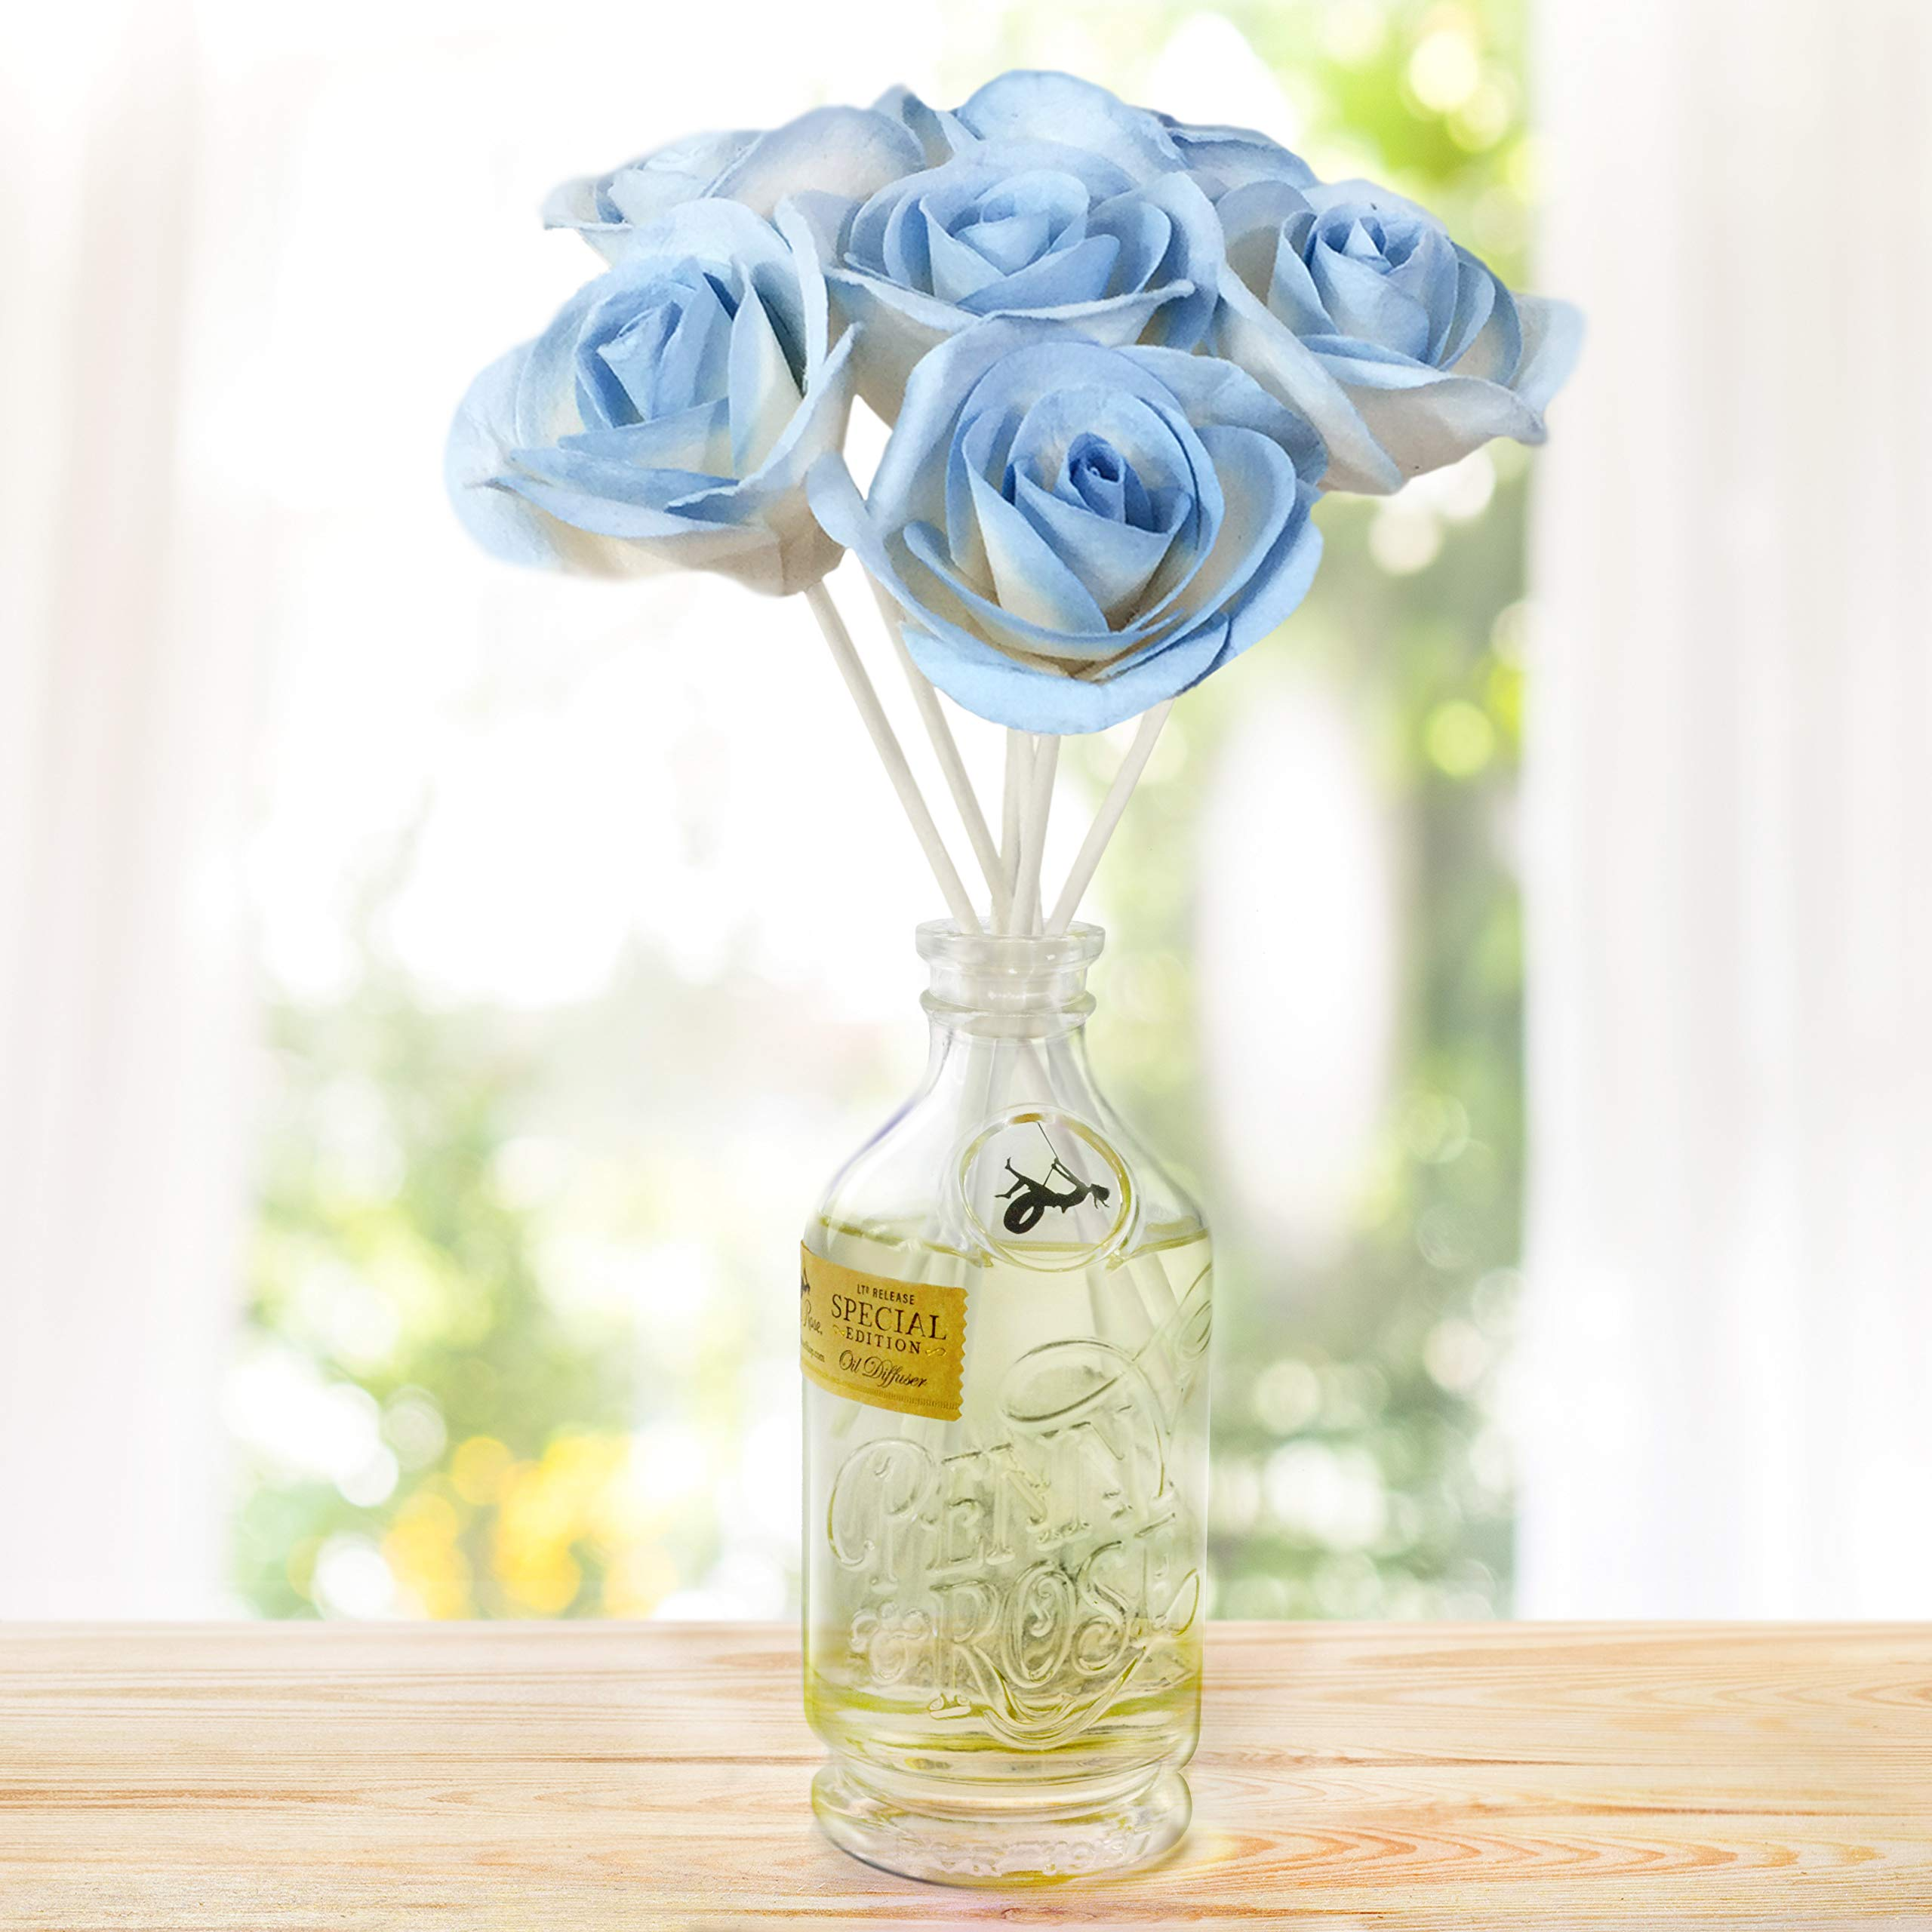 Penny & Rose Sky Rose Diffuser | Lawn Chair Lemonade Oil Scent by PENNY AND ROSE (Image #2)